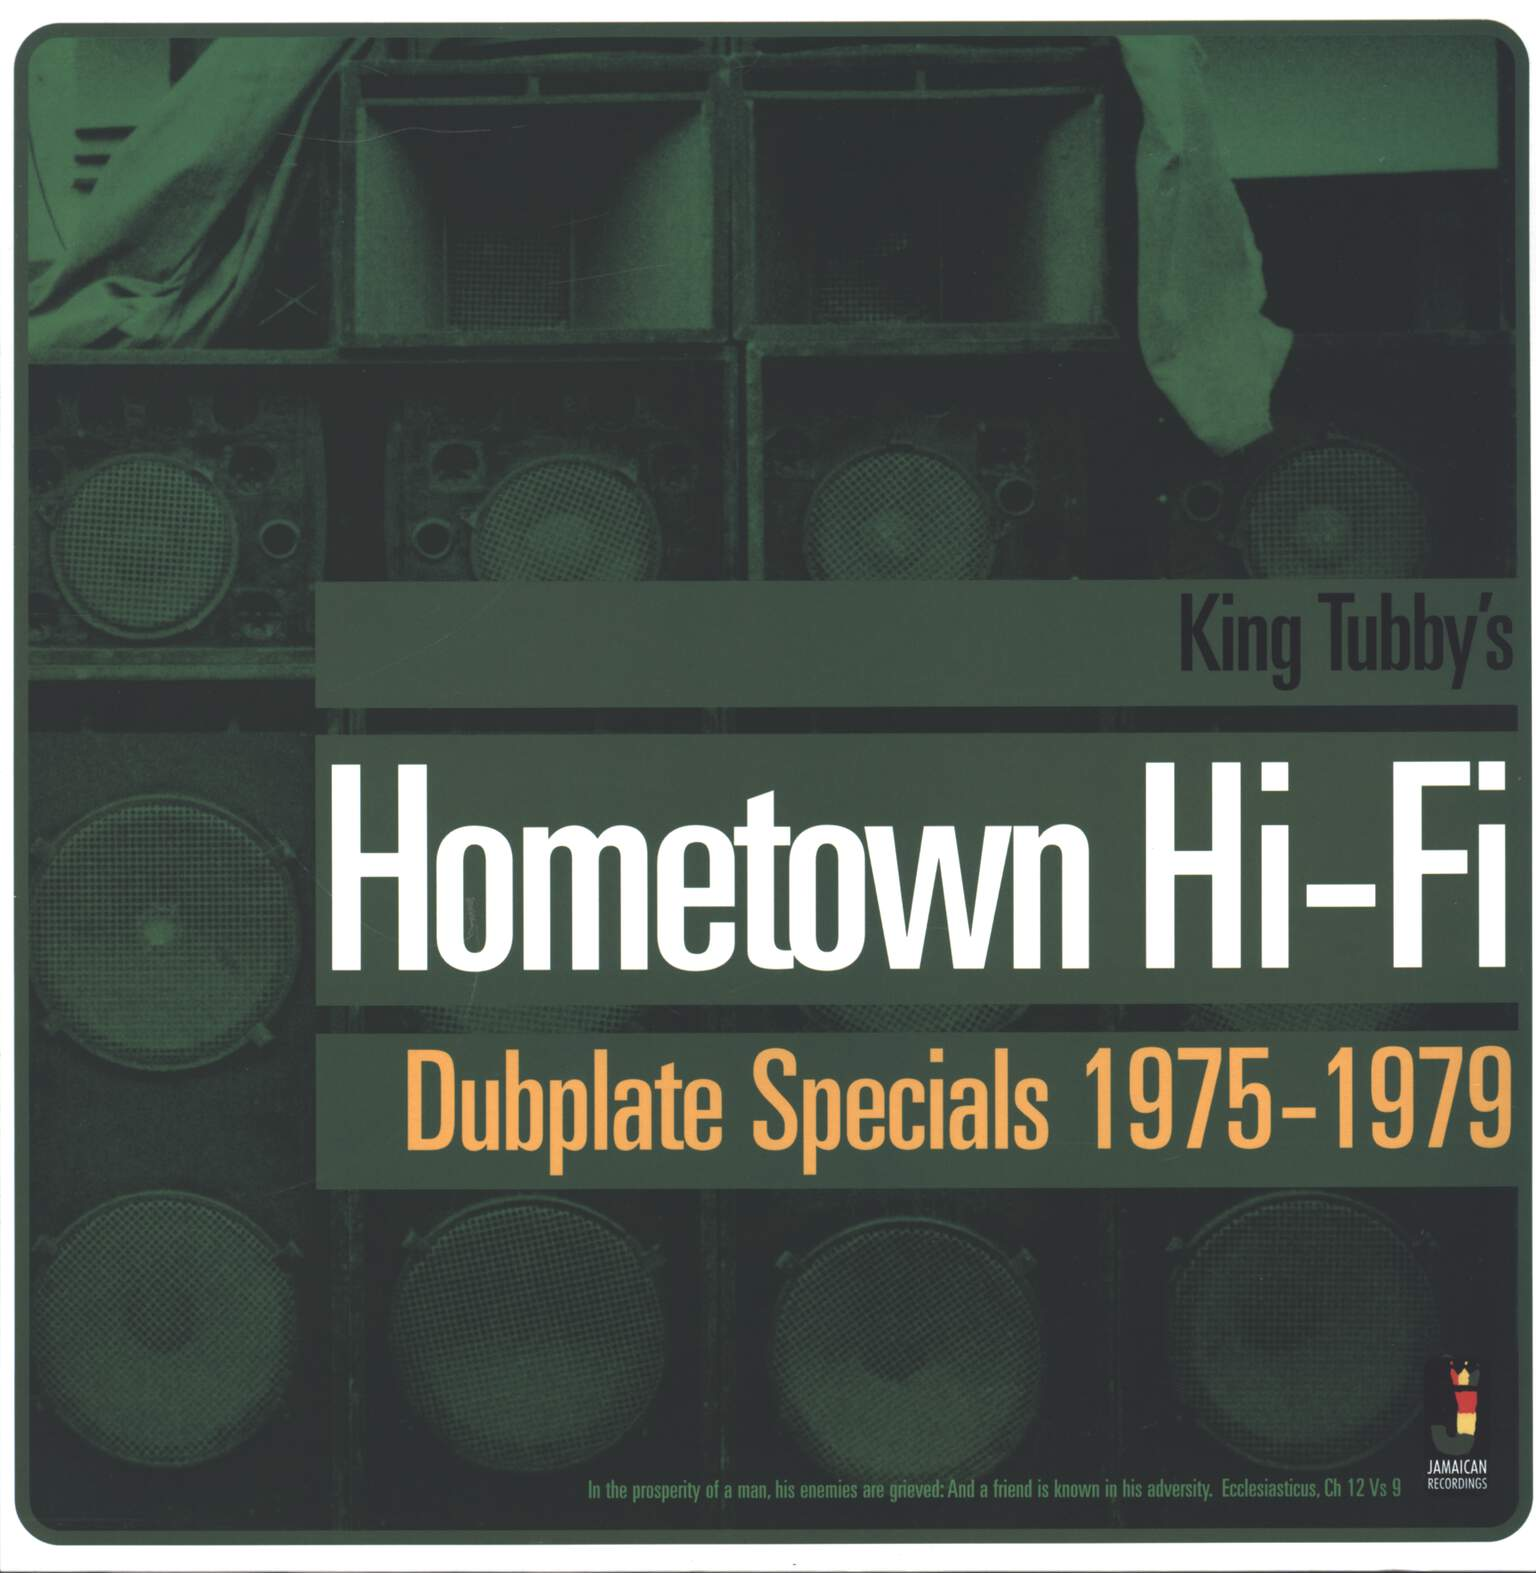 King Tubby: King Tubby's Hometown Hi-Fi (Dubplate Specials 1975-1979), LP (Vinyl)